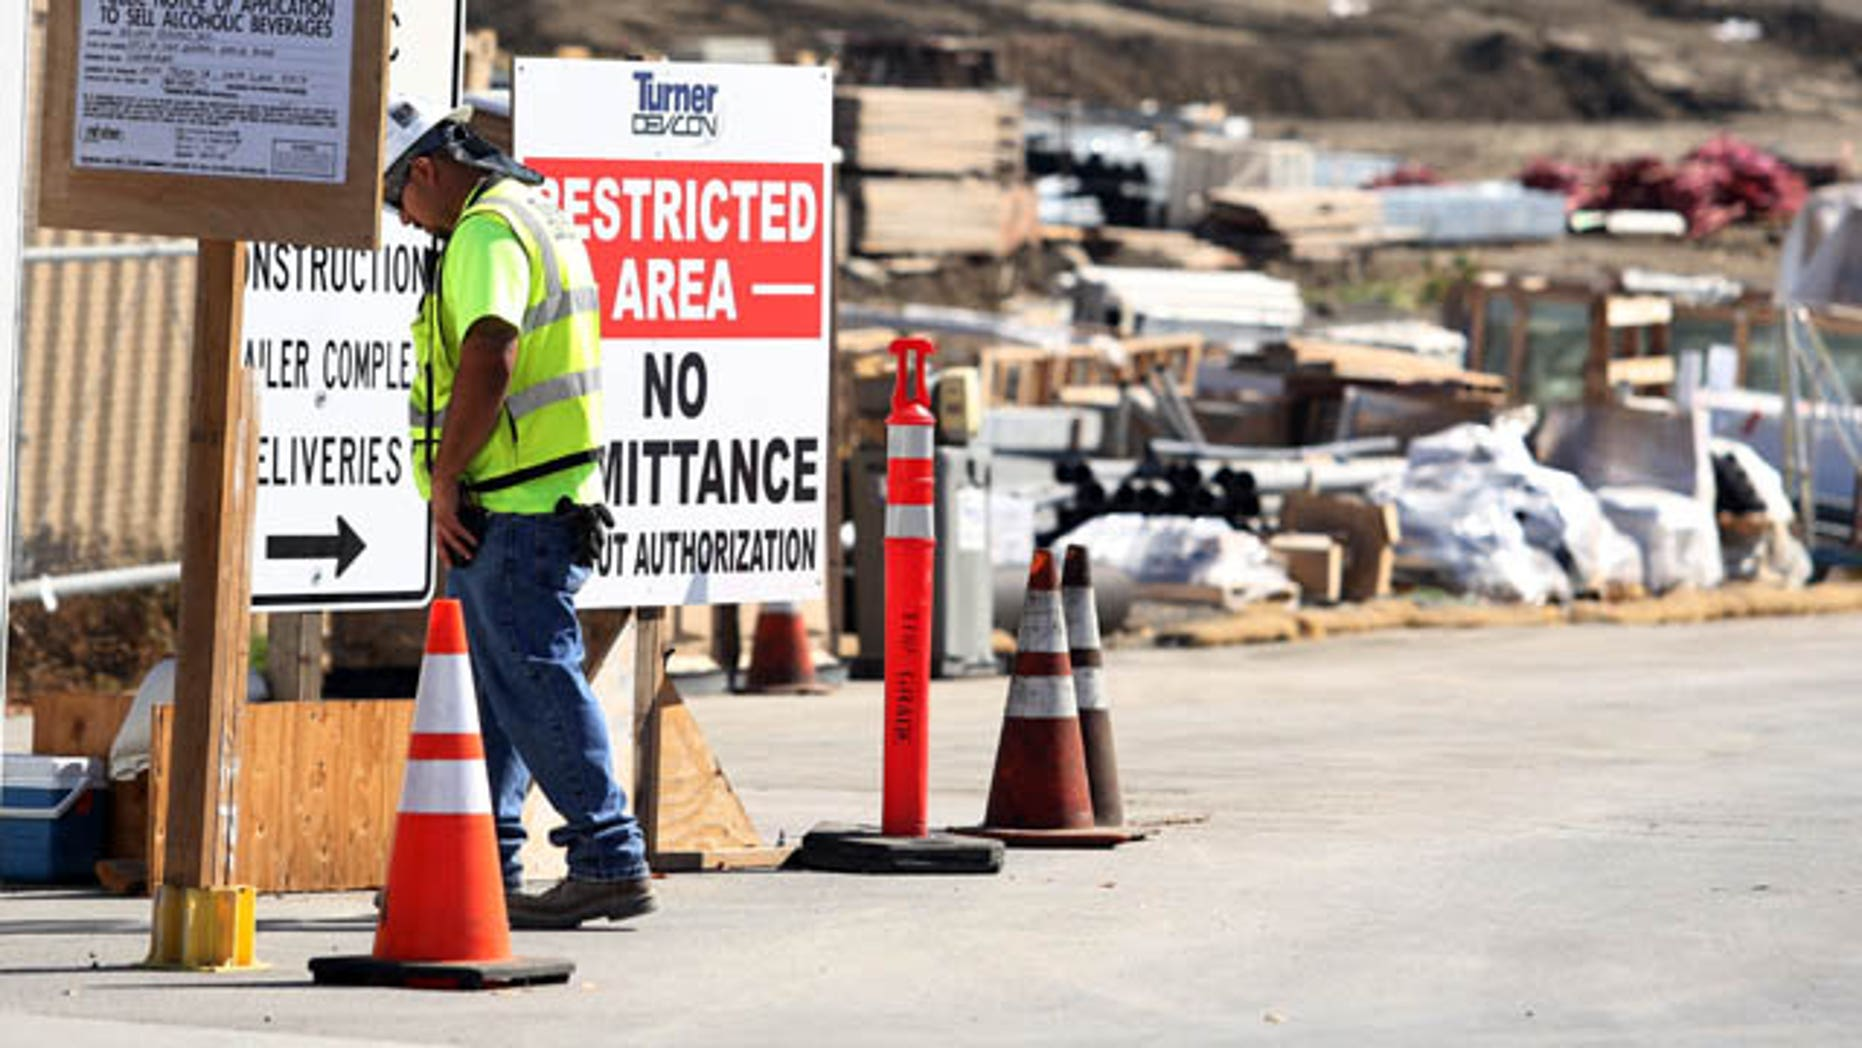 October 14, 2013: A security guard walks by a construction entrance at the Forty-Niners' new stadium Monday, Oct. 14, 2013, in Santa Clara, Calif., where a second worker has been killed in an accident in less than four months. (AP Photo)